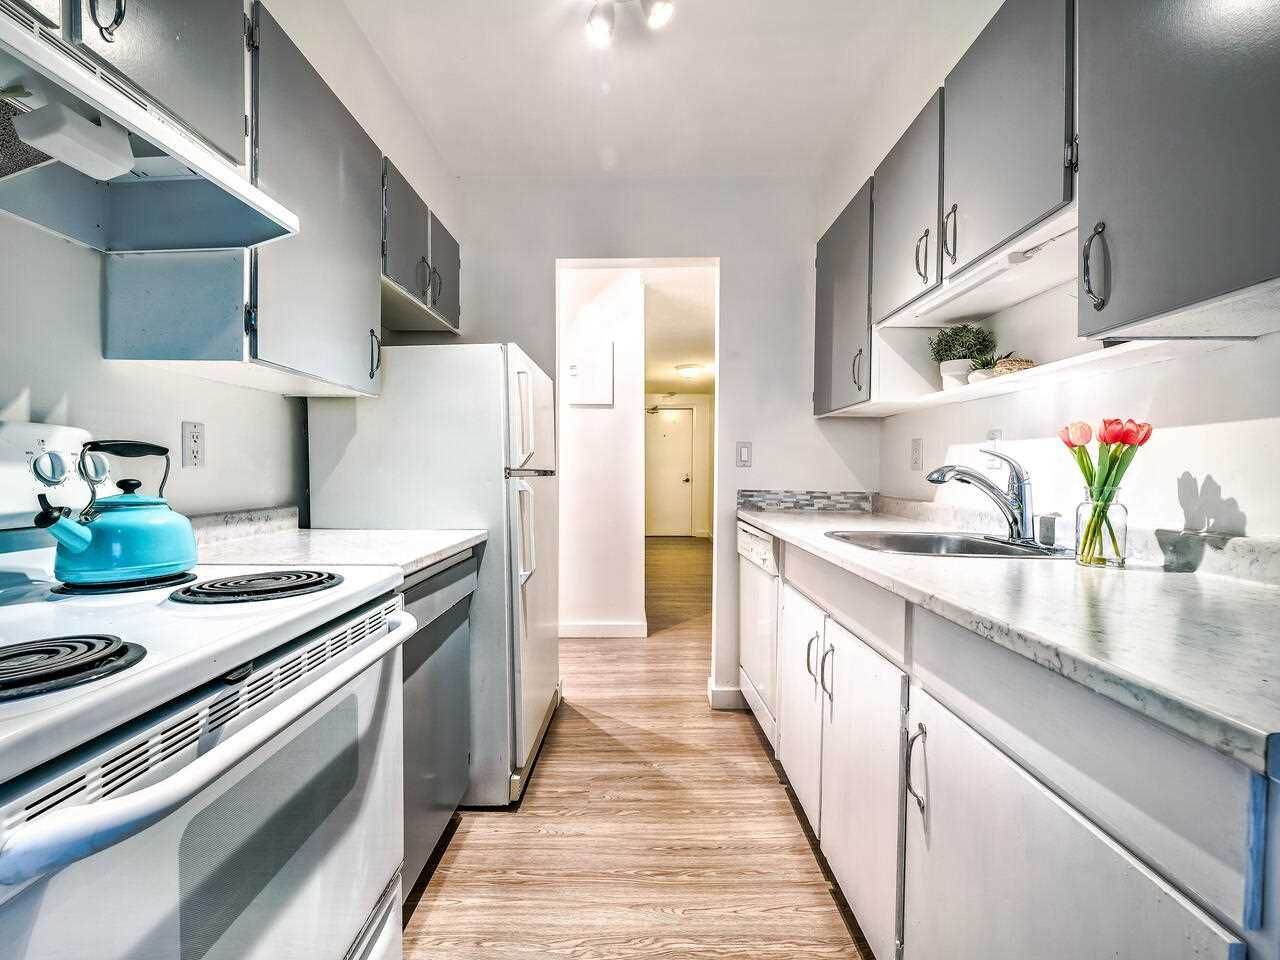 """Main Photo: 108 2250 OXFORD Street in Vancouver: Hastings Condo for sale in """"LANDMARK OXFORD"""" (Vancouver East)  : MLS®# R2528239"""